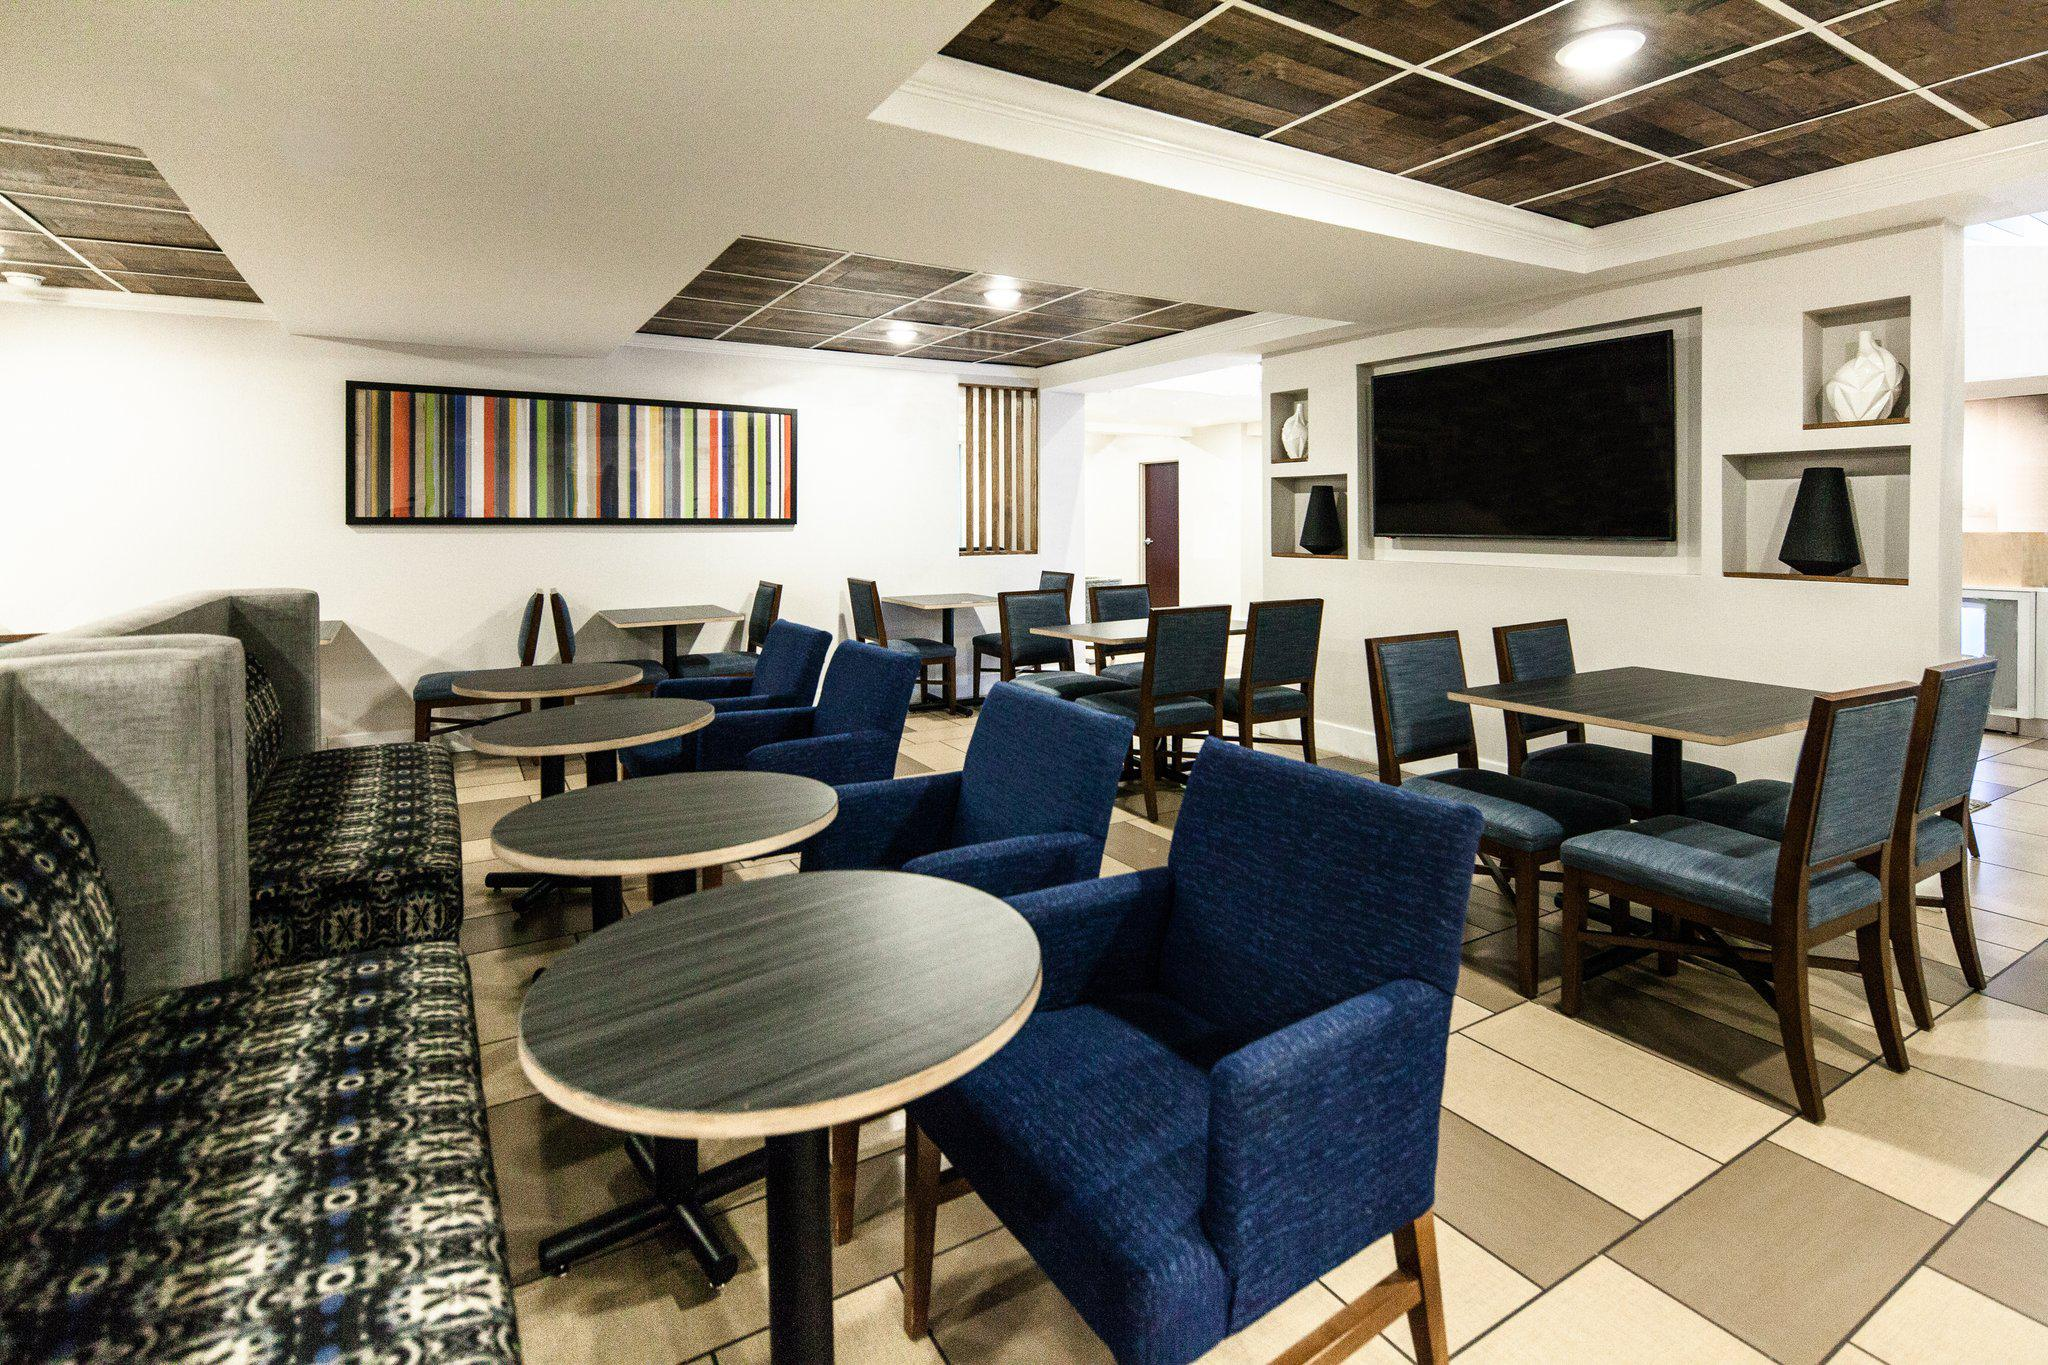 Holiday Inn Express & Suites Brentwood North-Nashville Area, an IHG Hotel